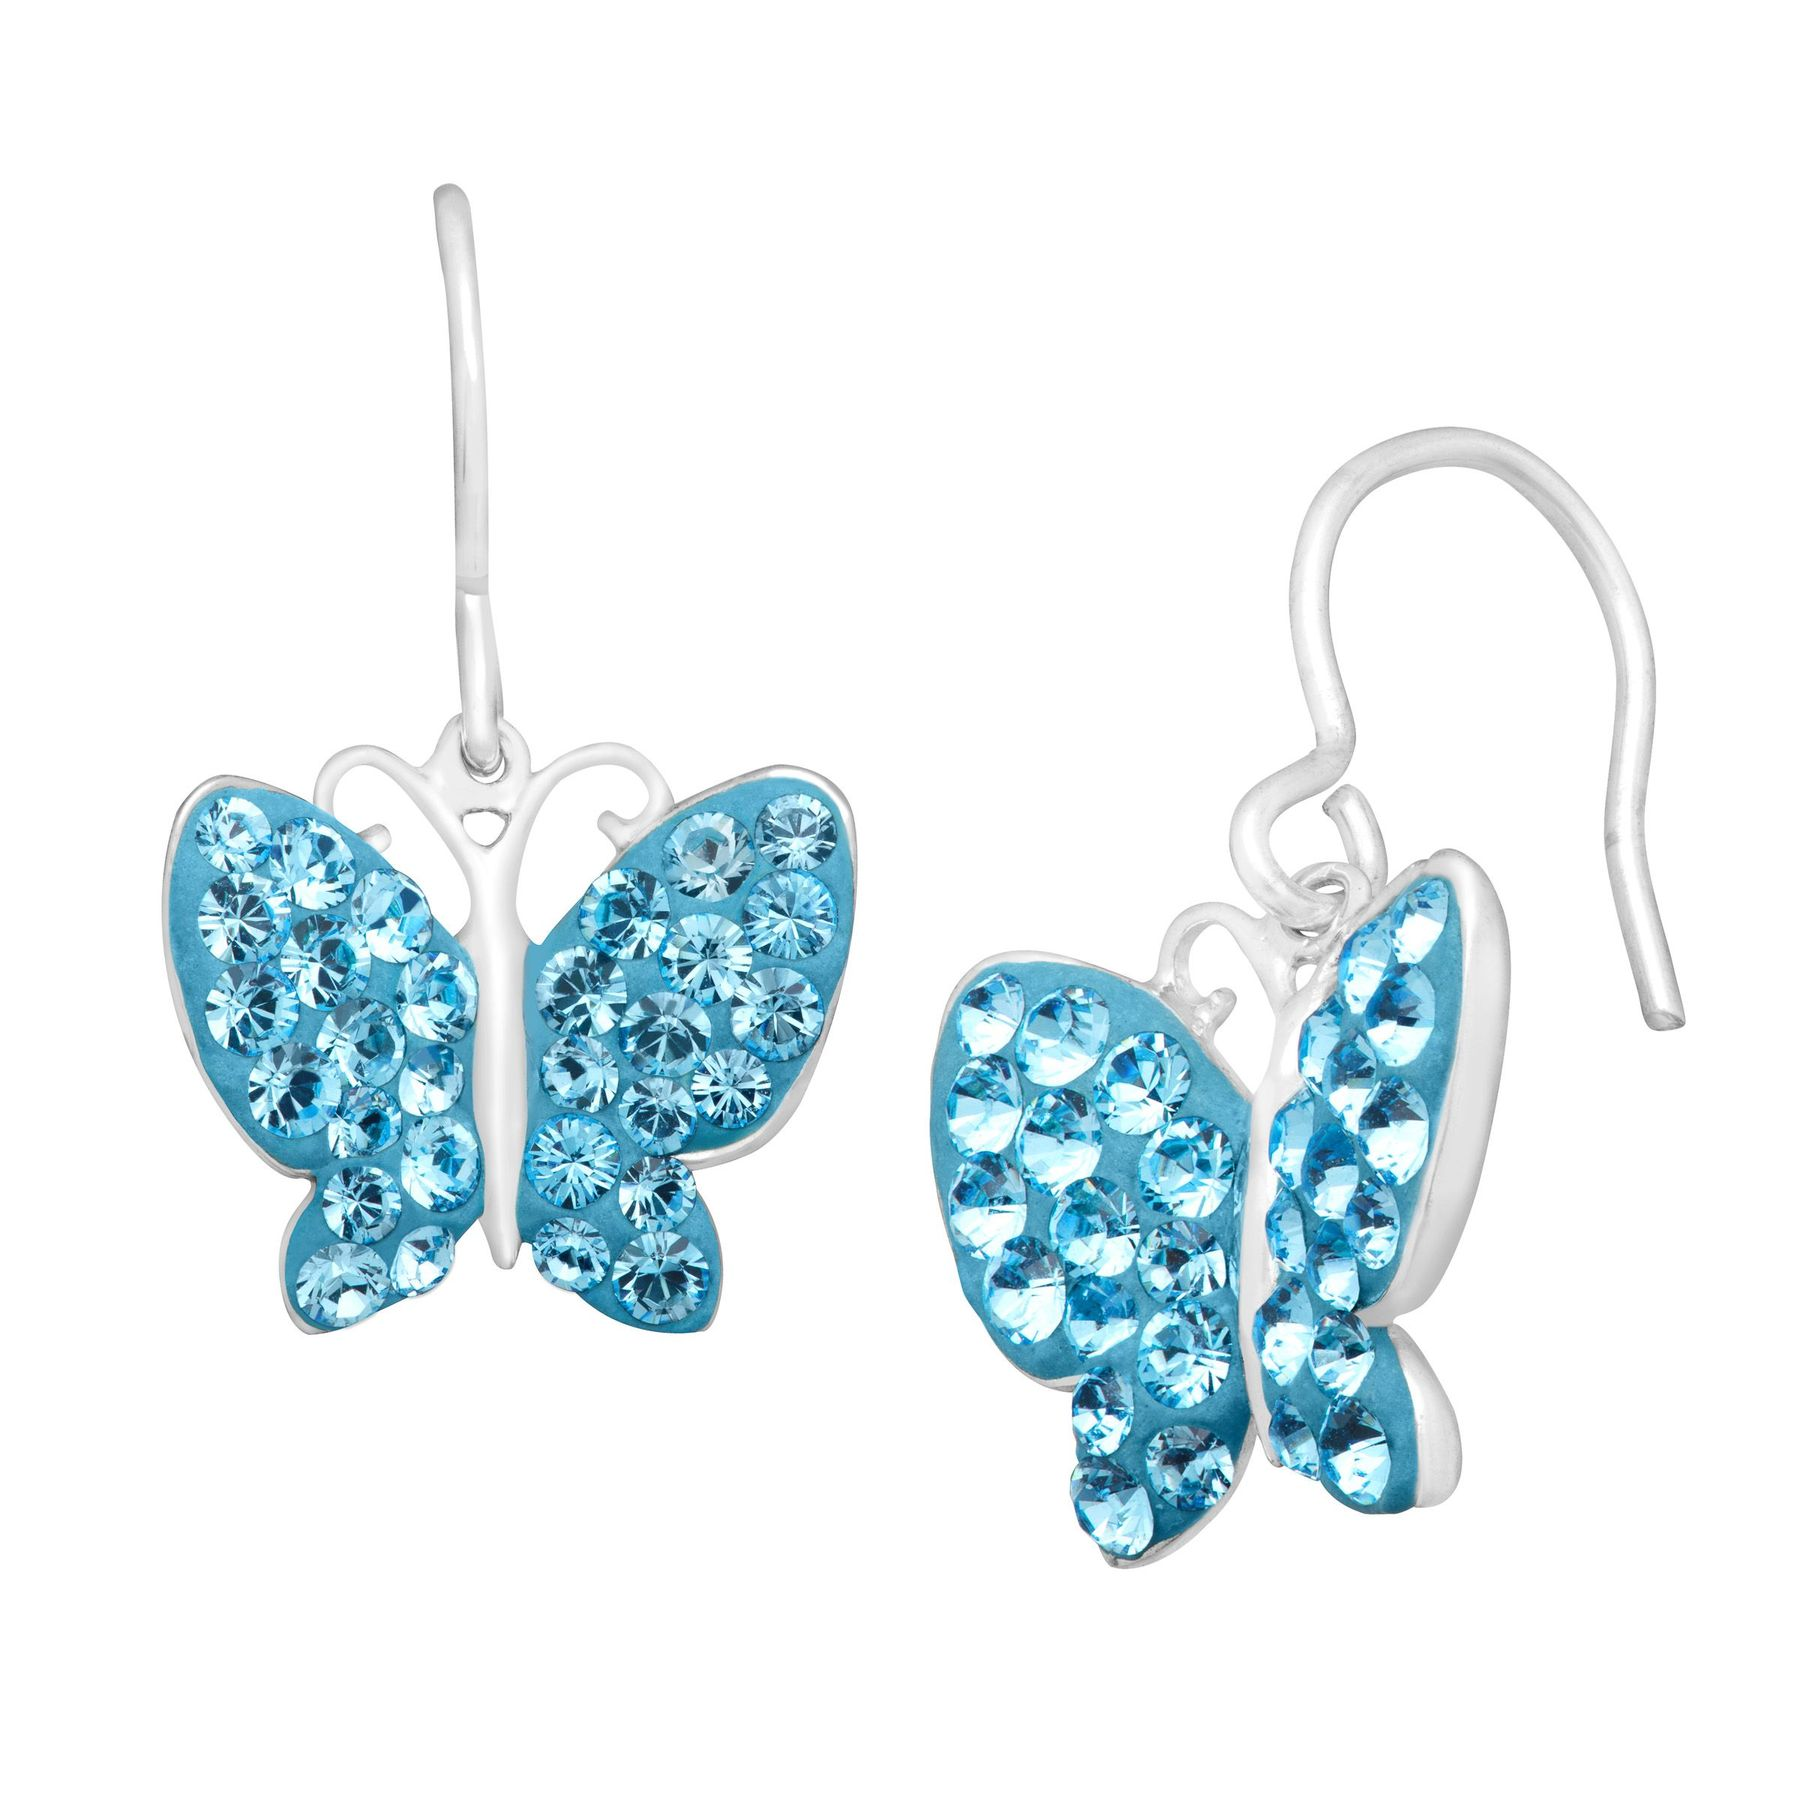 good selling reputation first latest releases Butterfly Earrings with Blue Swarovski Crystals in Sterling Silver